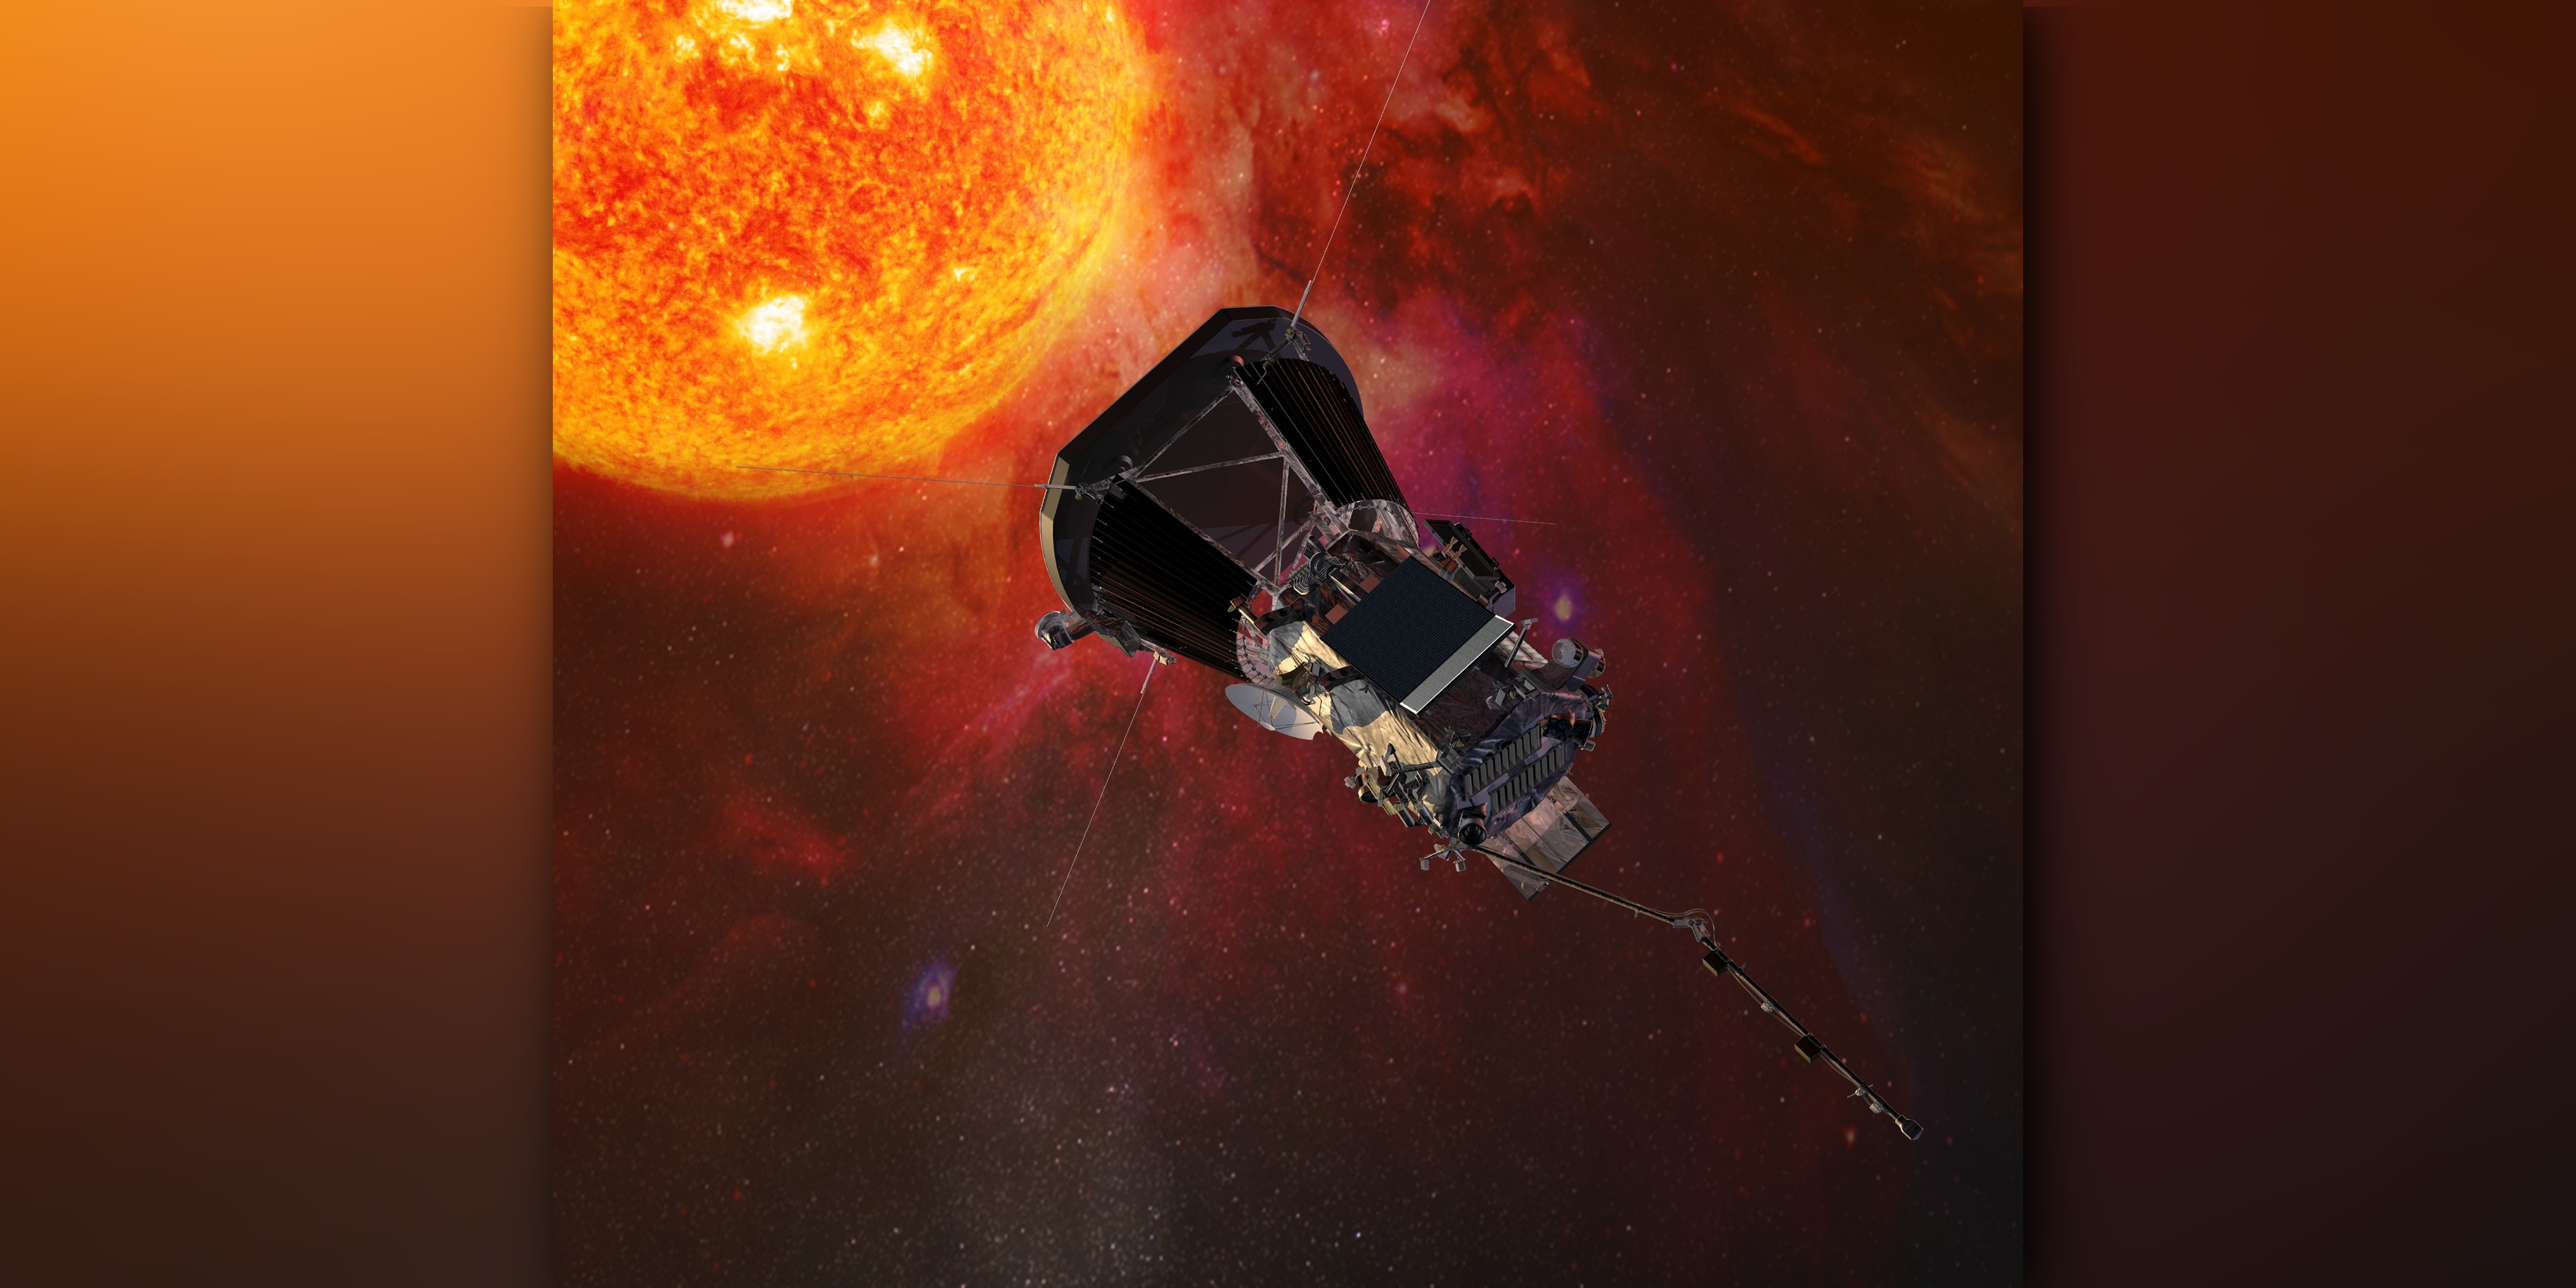 nasa satellite to the sun - 960×600